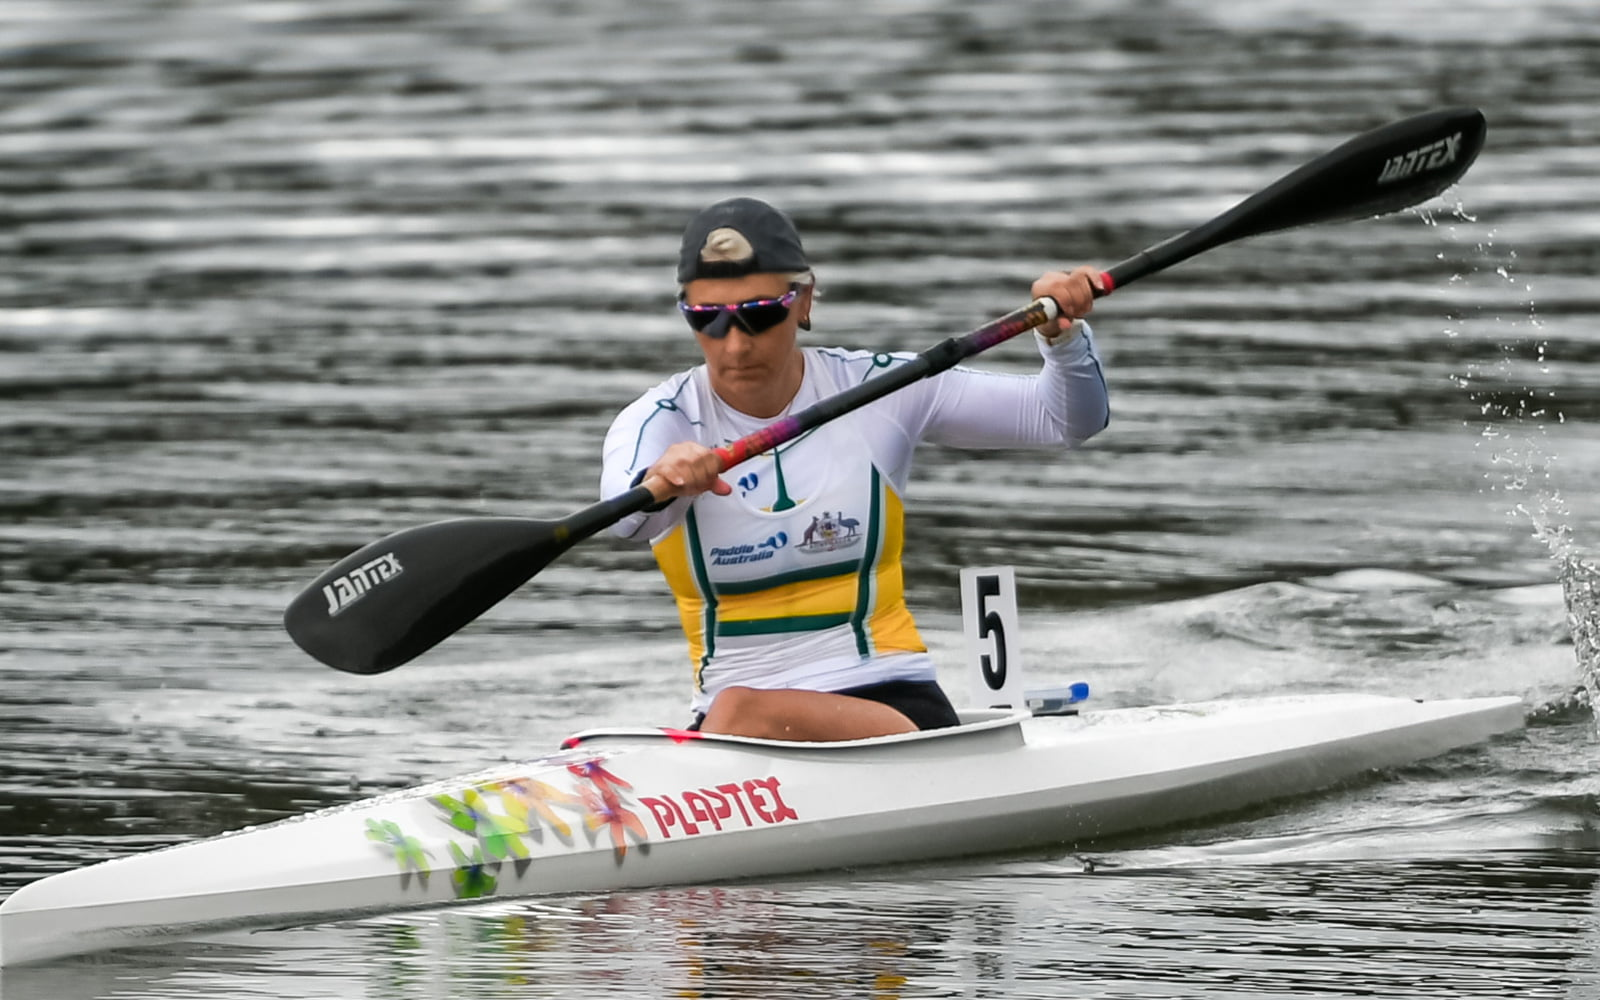 Para-canoeists Back In Action On Extended Road To Tokyo